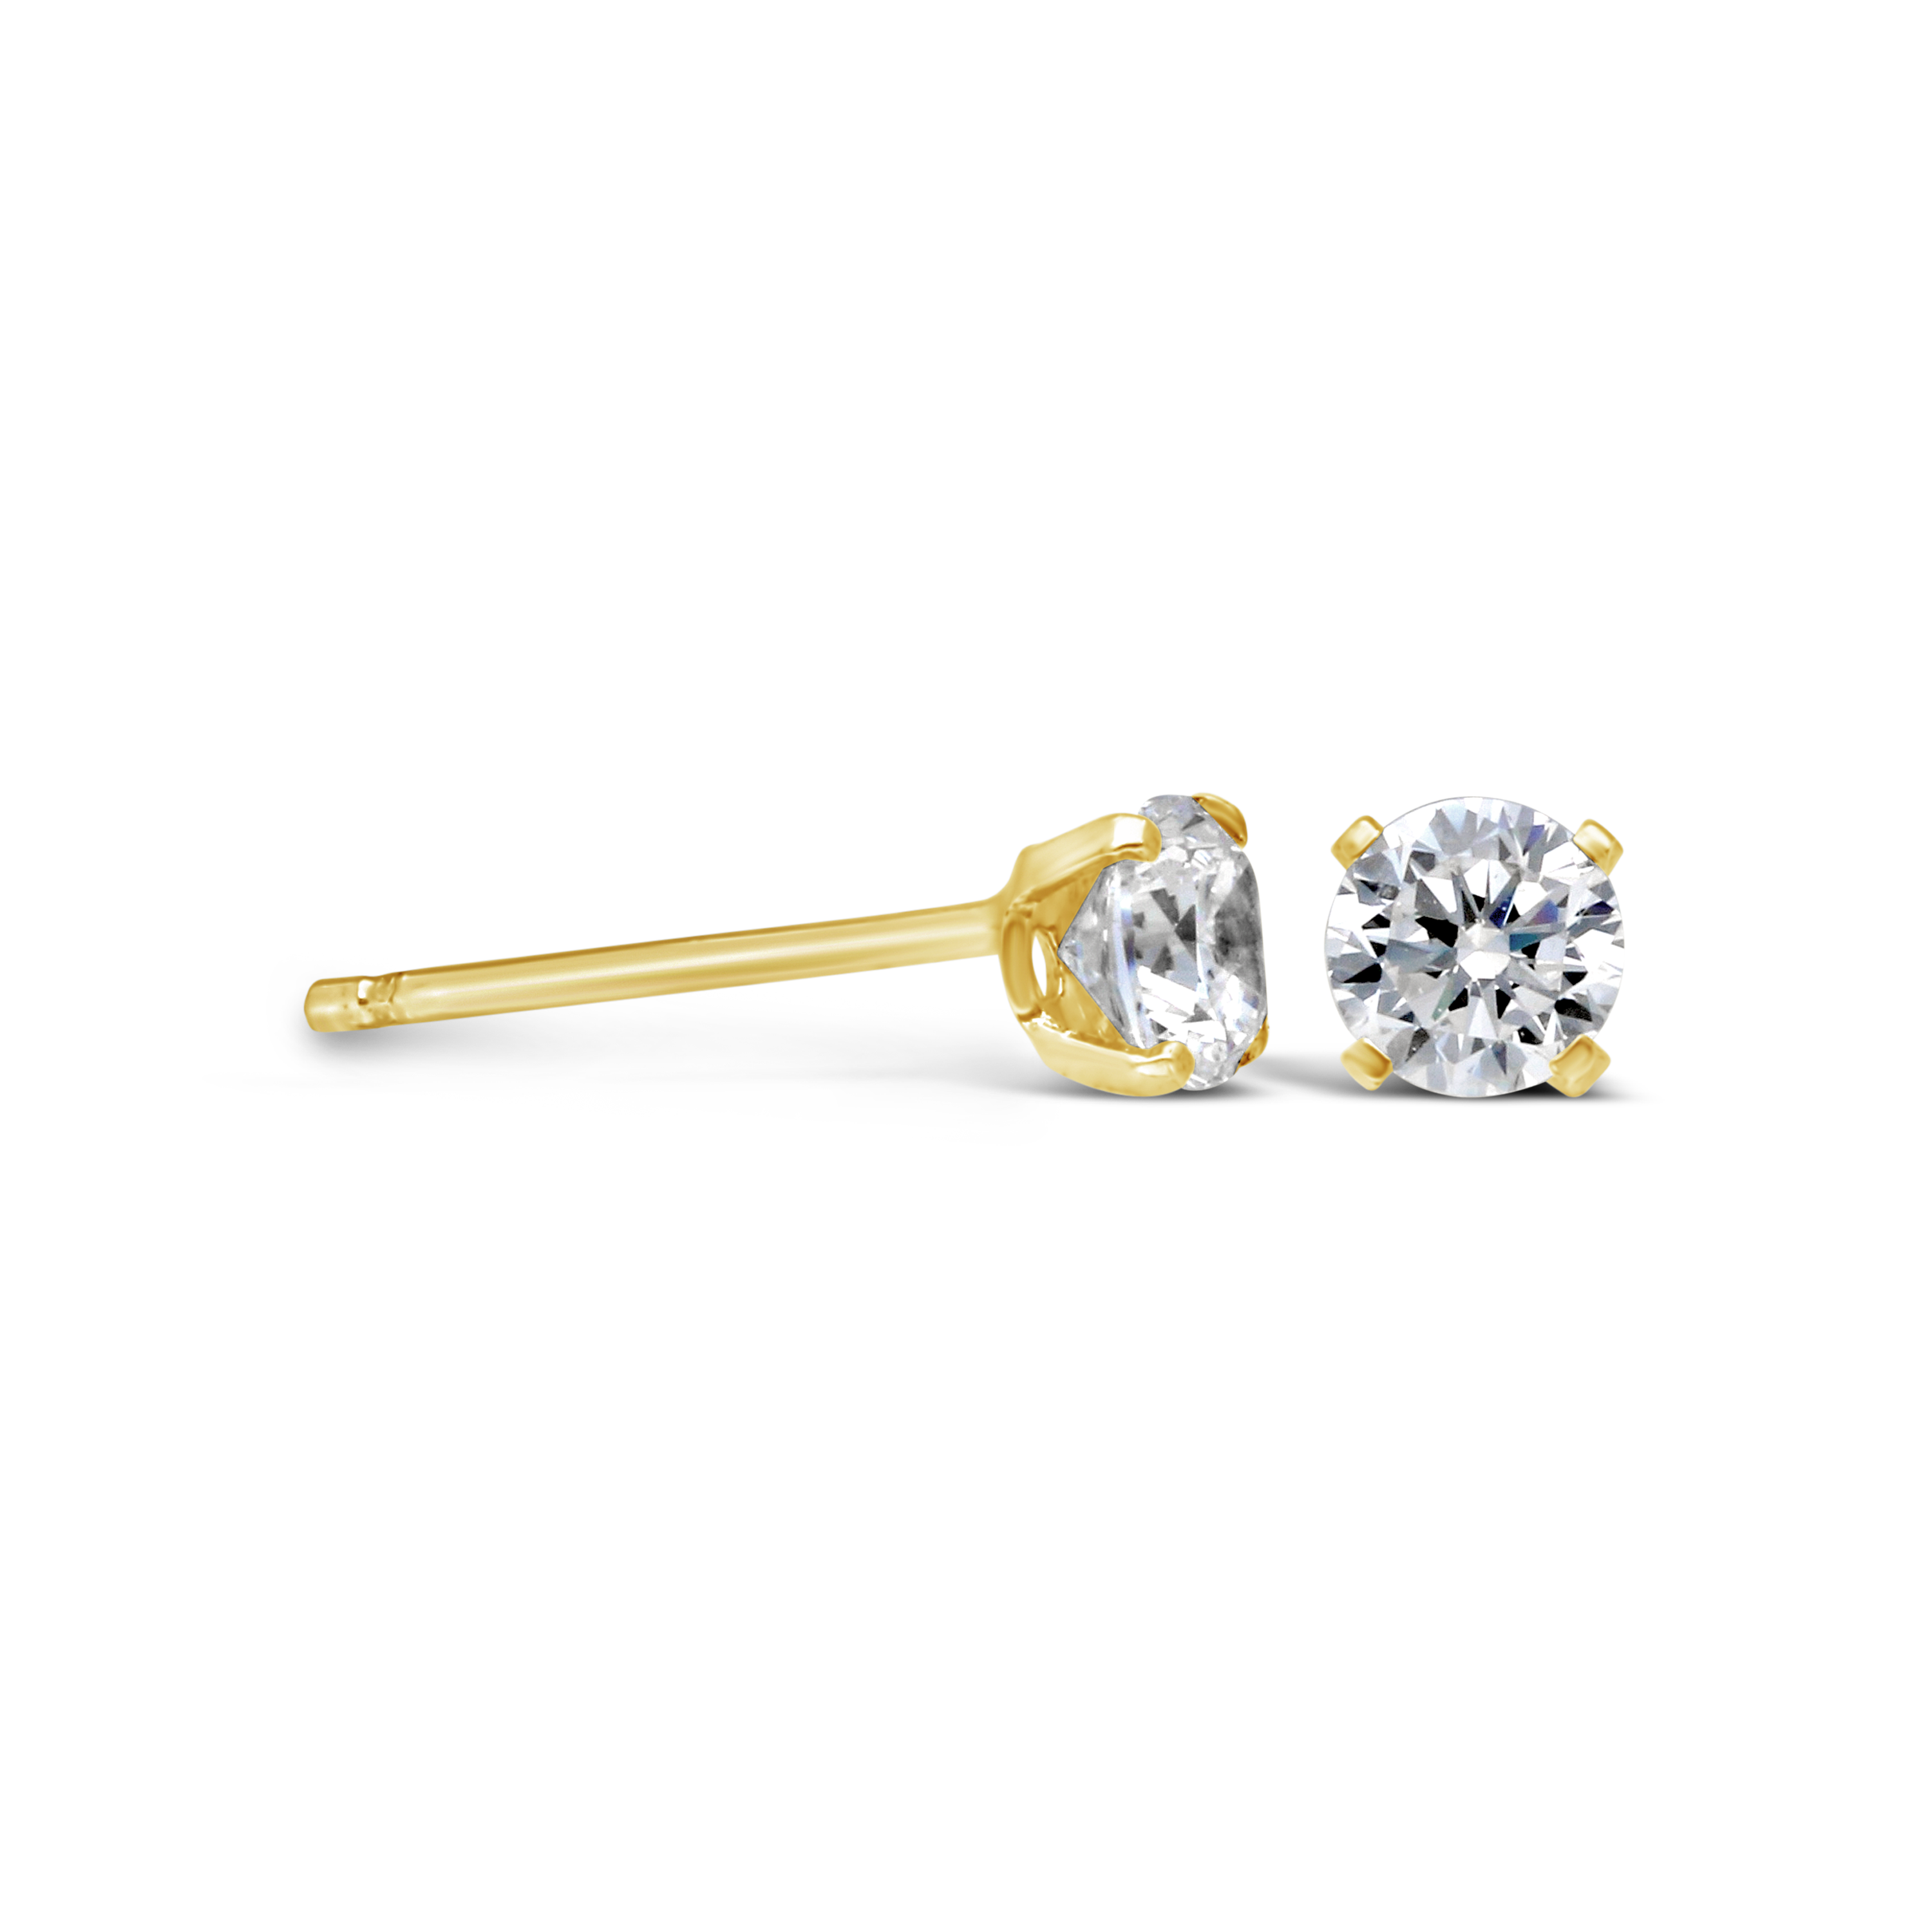 c1952c68d847 9ct Gold 4mm Cubic Zirconia Stud Earrings - NWJ